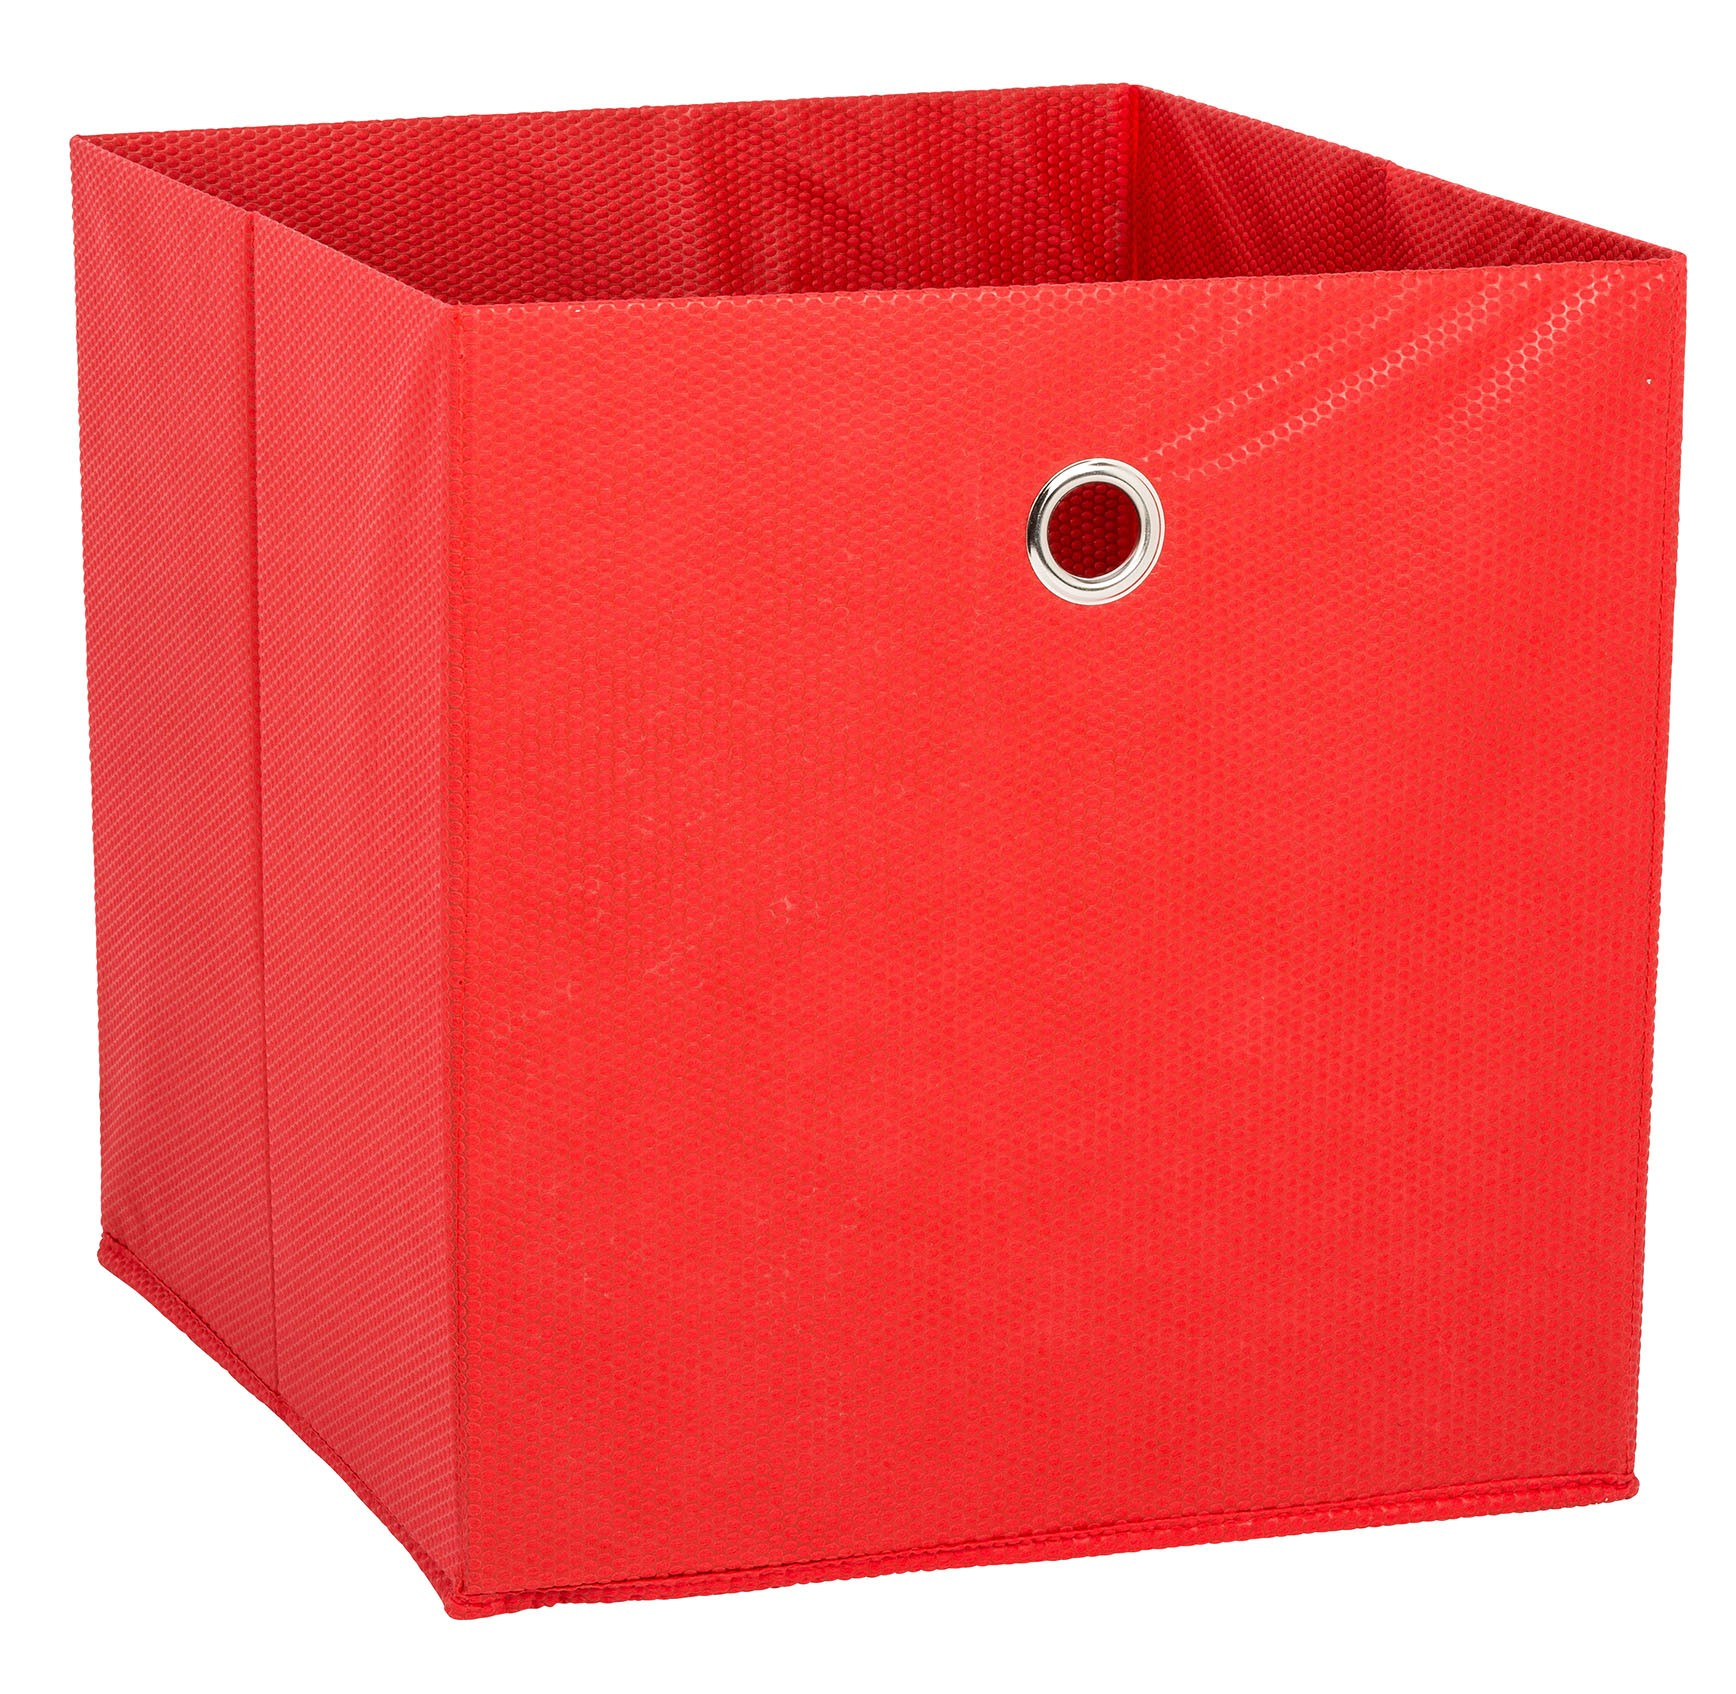 Fabric Box Red Large From Storage Box